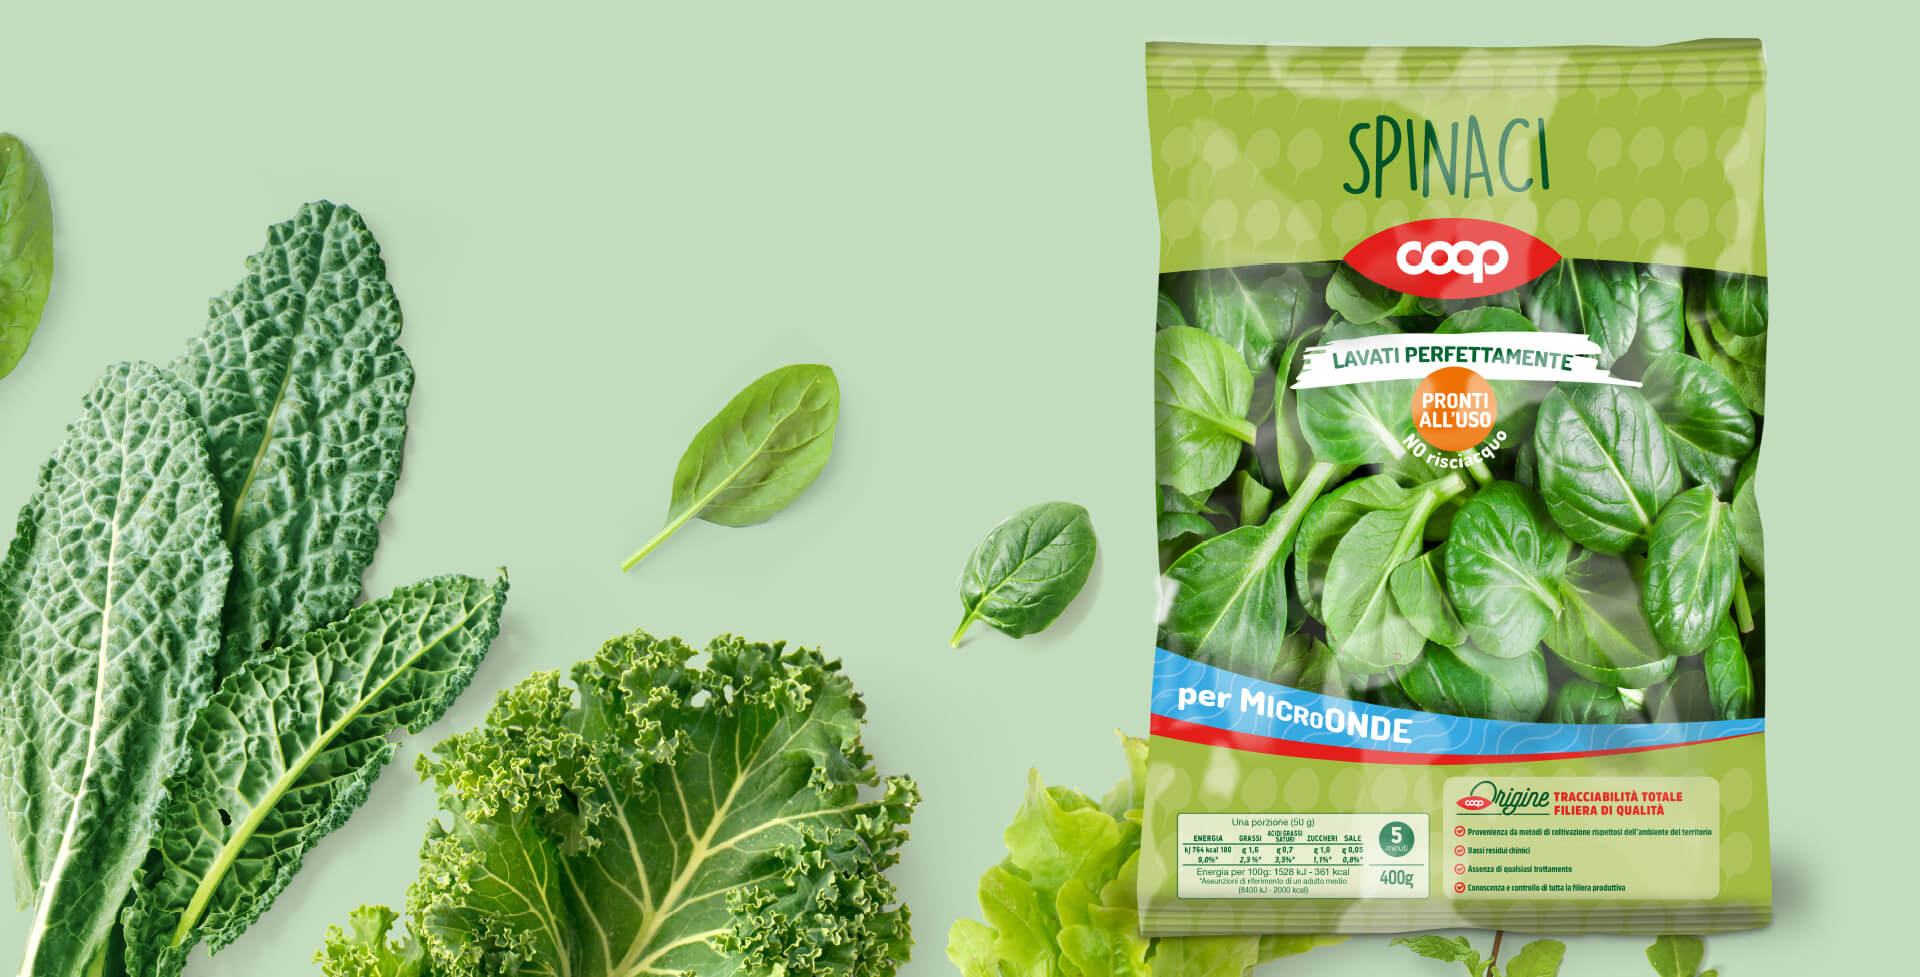 Insalate Coop Italia packaging by Start